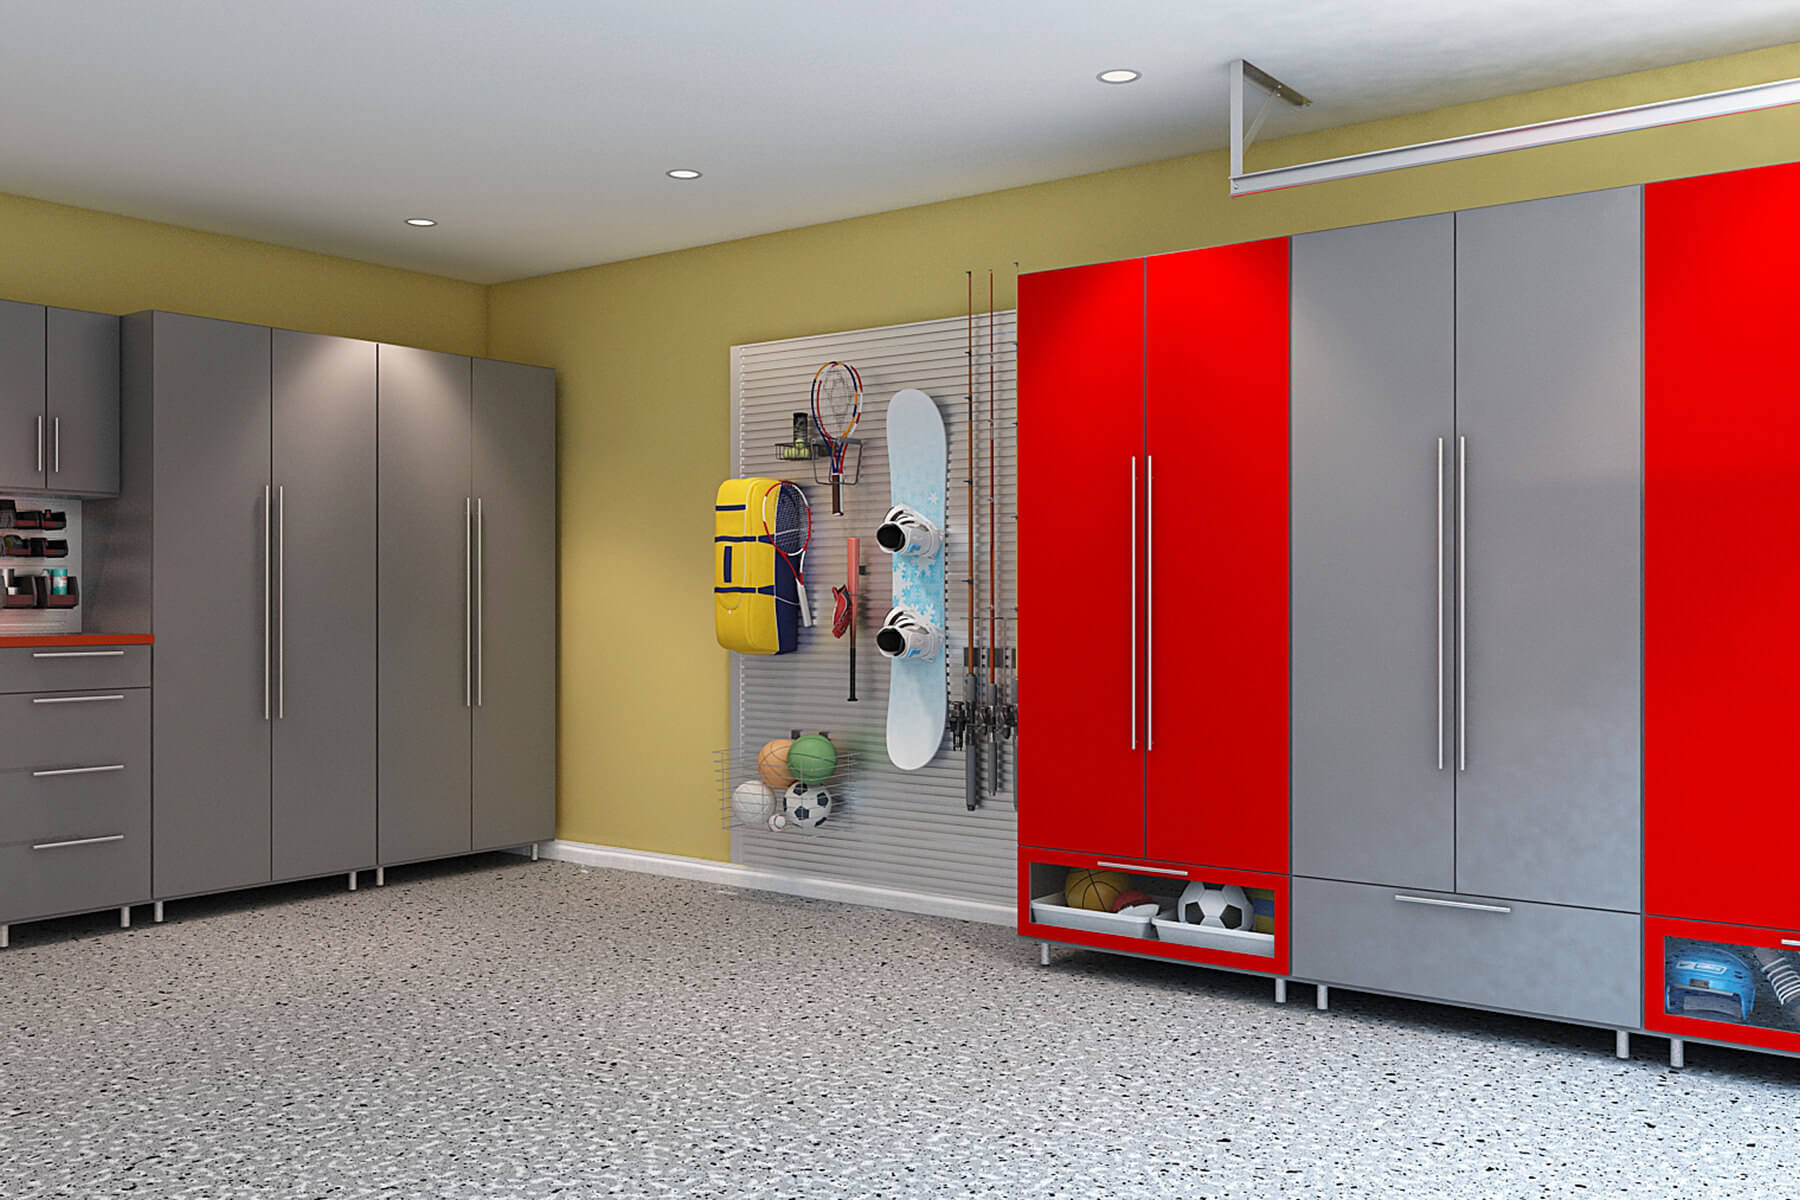 The industrial look of the tall steel gray melamine cabinets is contrasted by the boldness of red creating a playful vibe for the garage. Underneath the cabinets are storage areas where you can store smaller items.